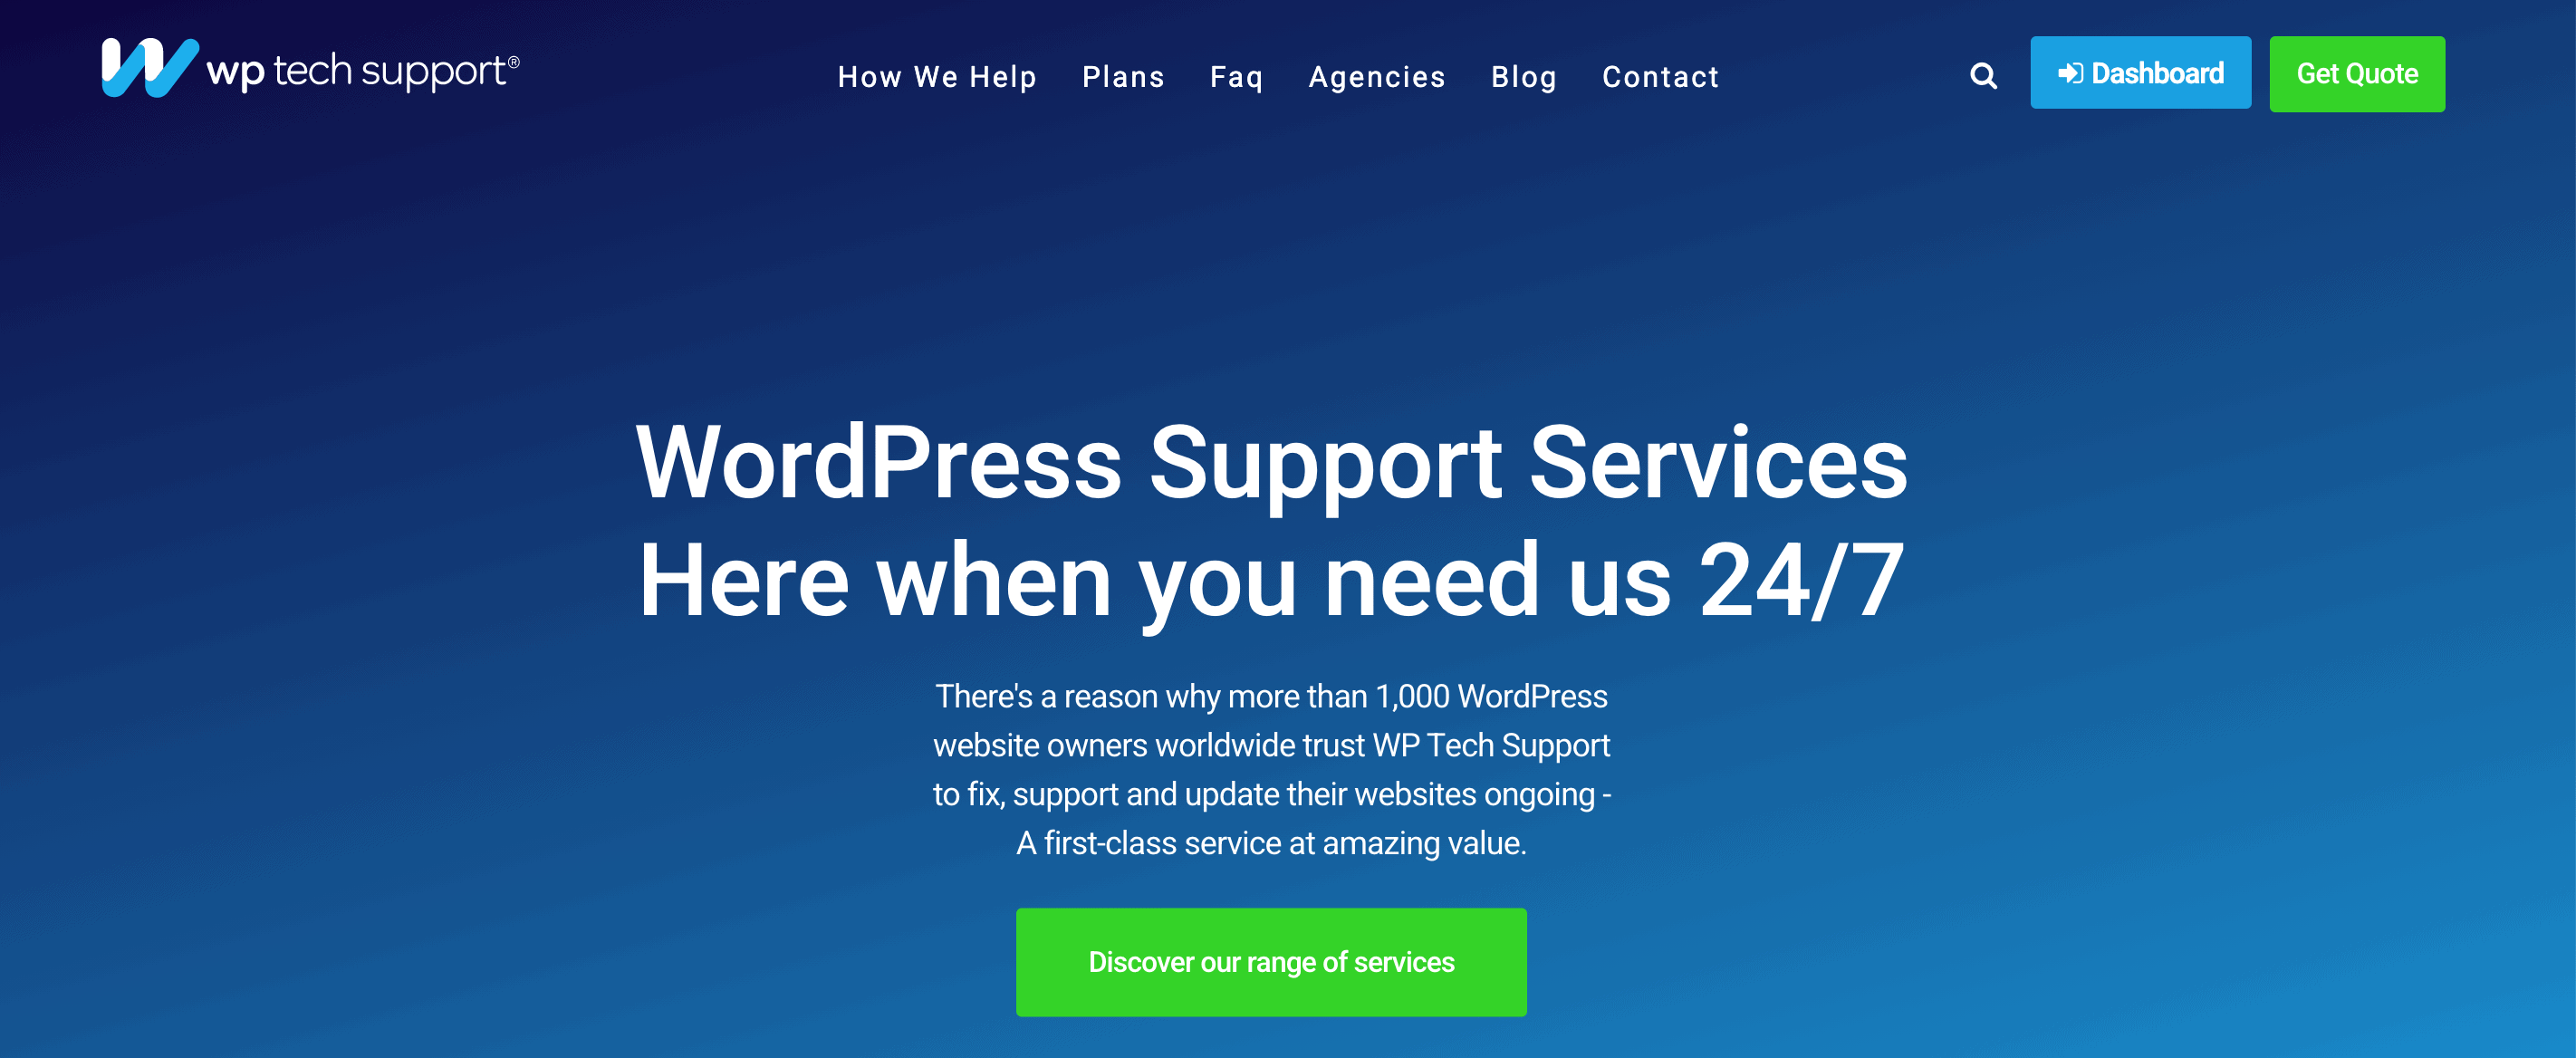 WP Tech Support - WordPress Support Services